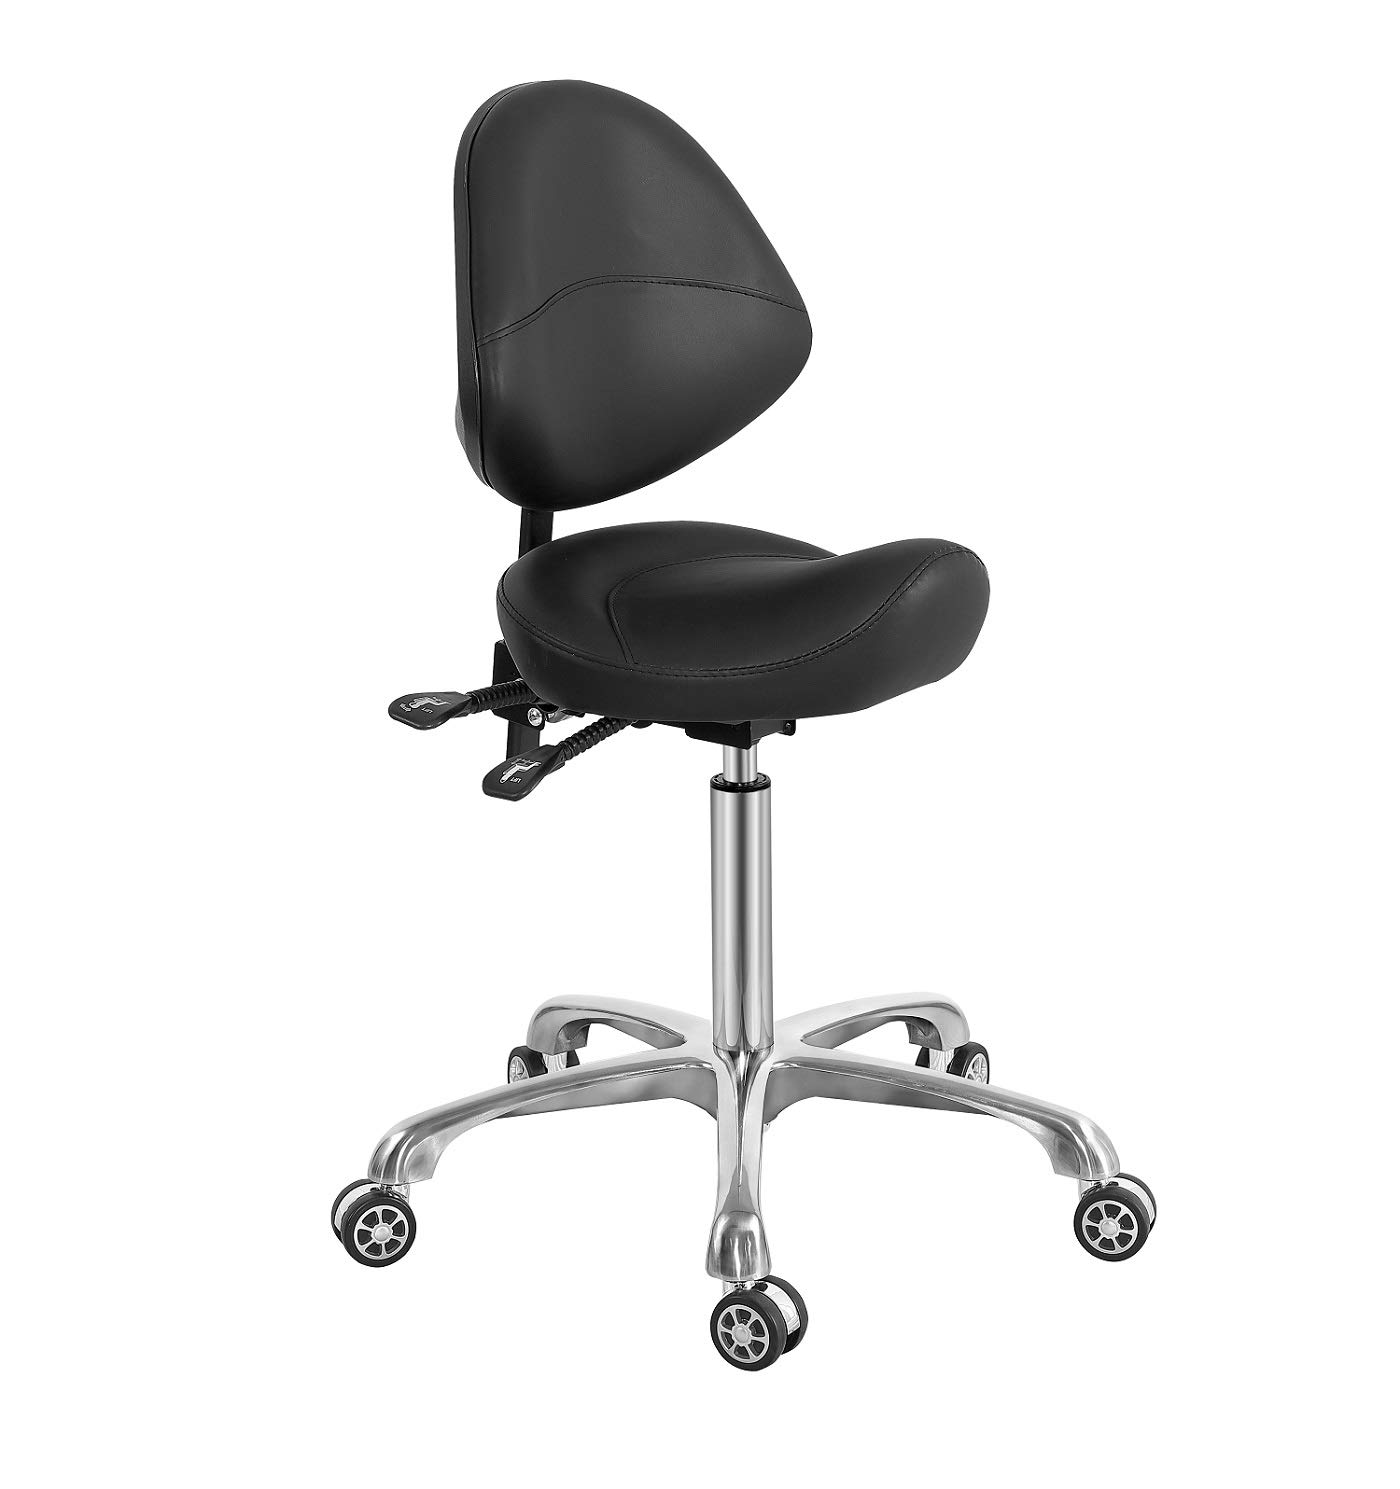 Saddle Stool Chair with Back Support, Heavy-Duty(350LBS), Hydraulic Rolling Swivel Adjustable Stool Chair for Salon Spa Beauty Massage Dental Clinic Home Office Use(Black)